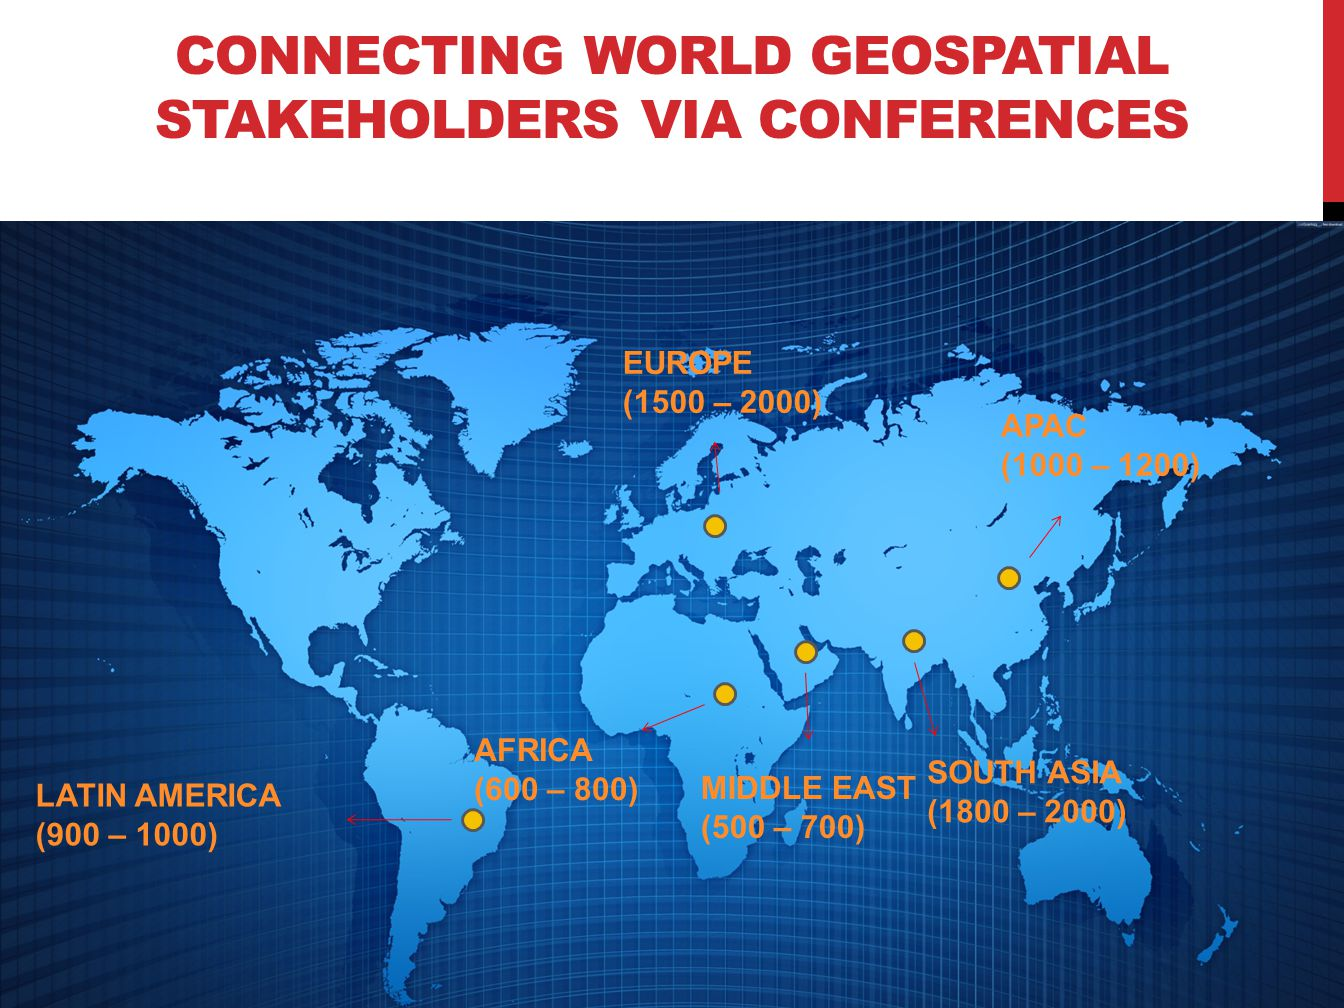 SOUTH ASIA (1800 – 2000) EUROPE (1500 – 2000) MIDDLE EAST (500 – 700) AFRICA (600 – 800) LATIN AMERICA (900 – 1000) APAC (1000 – 1200) CONNECTING WORLD GEOSPATIAL STAKEHOLDERS VIA CONFERENCES